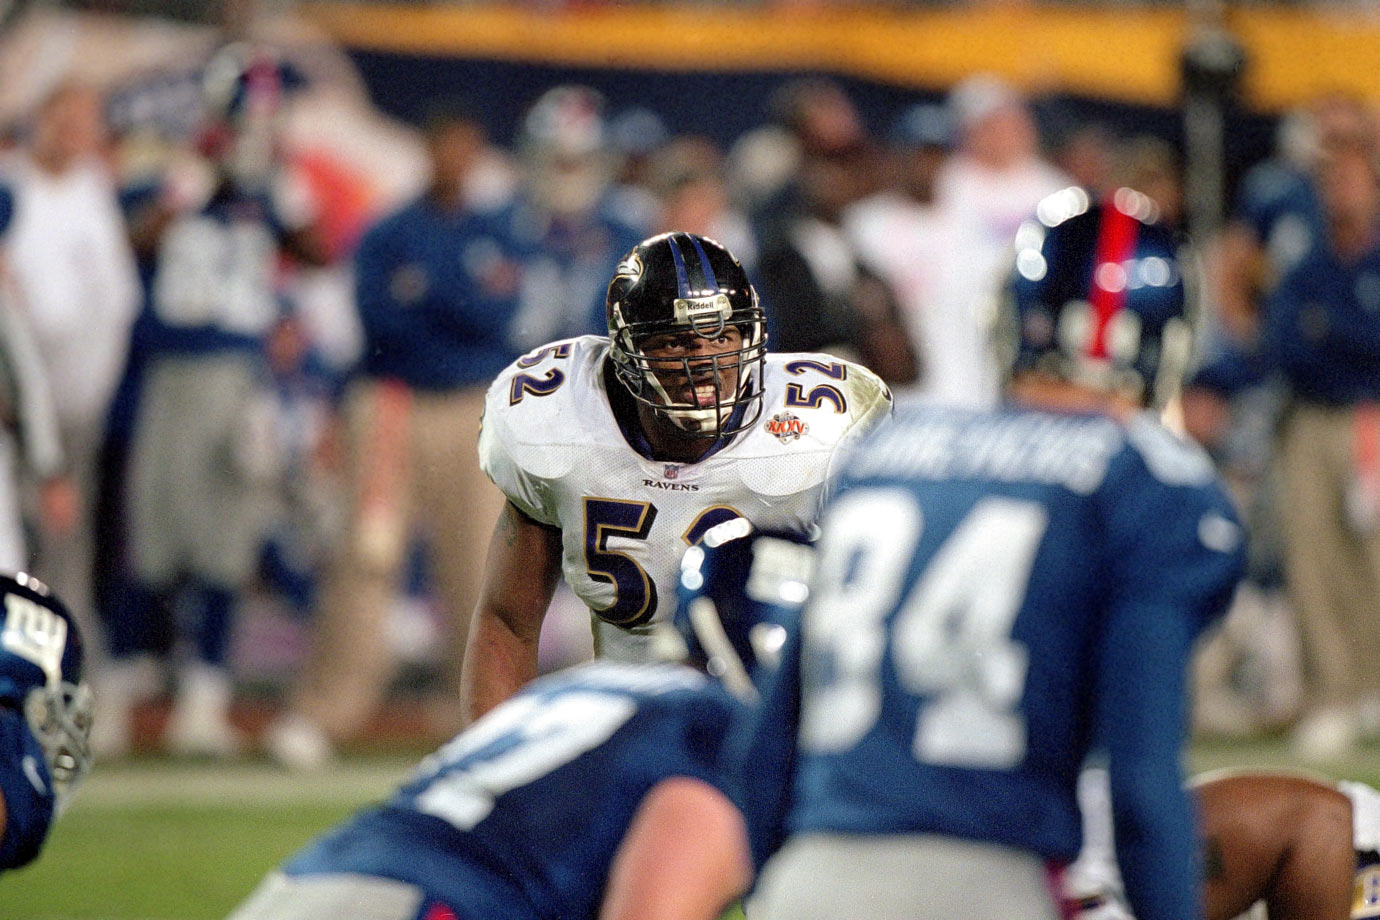 Jan. 28, 2001 — Super Bowl XXXV